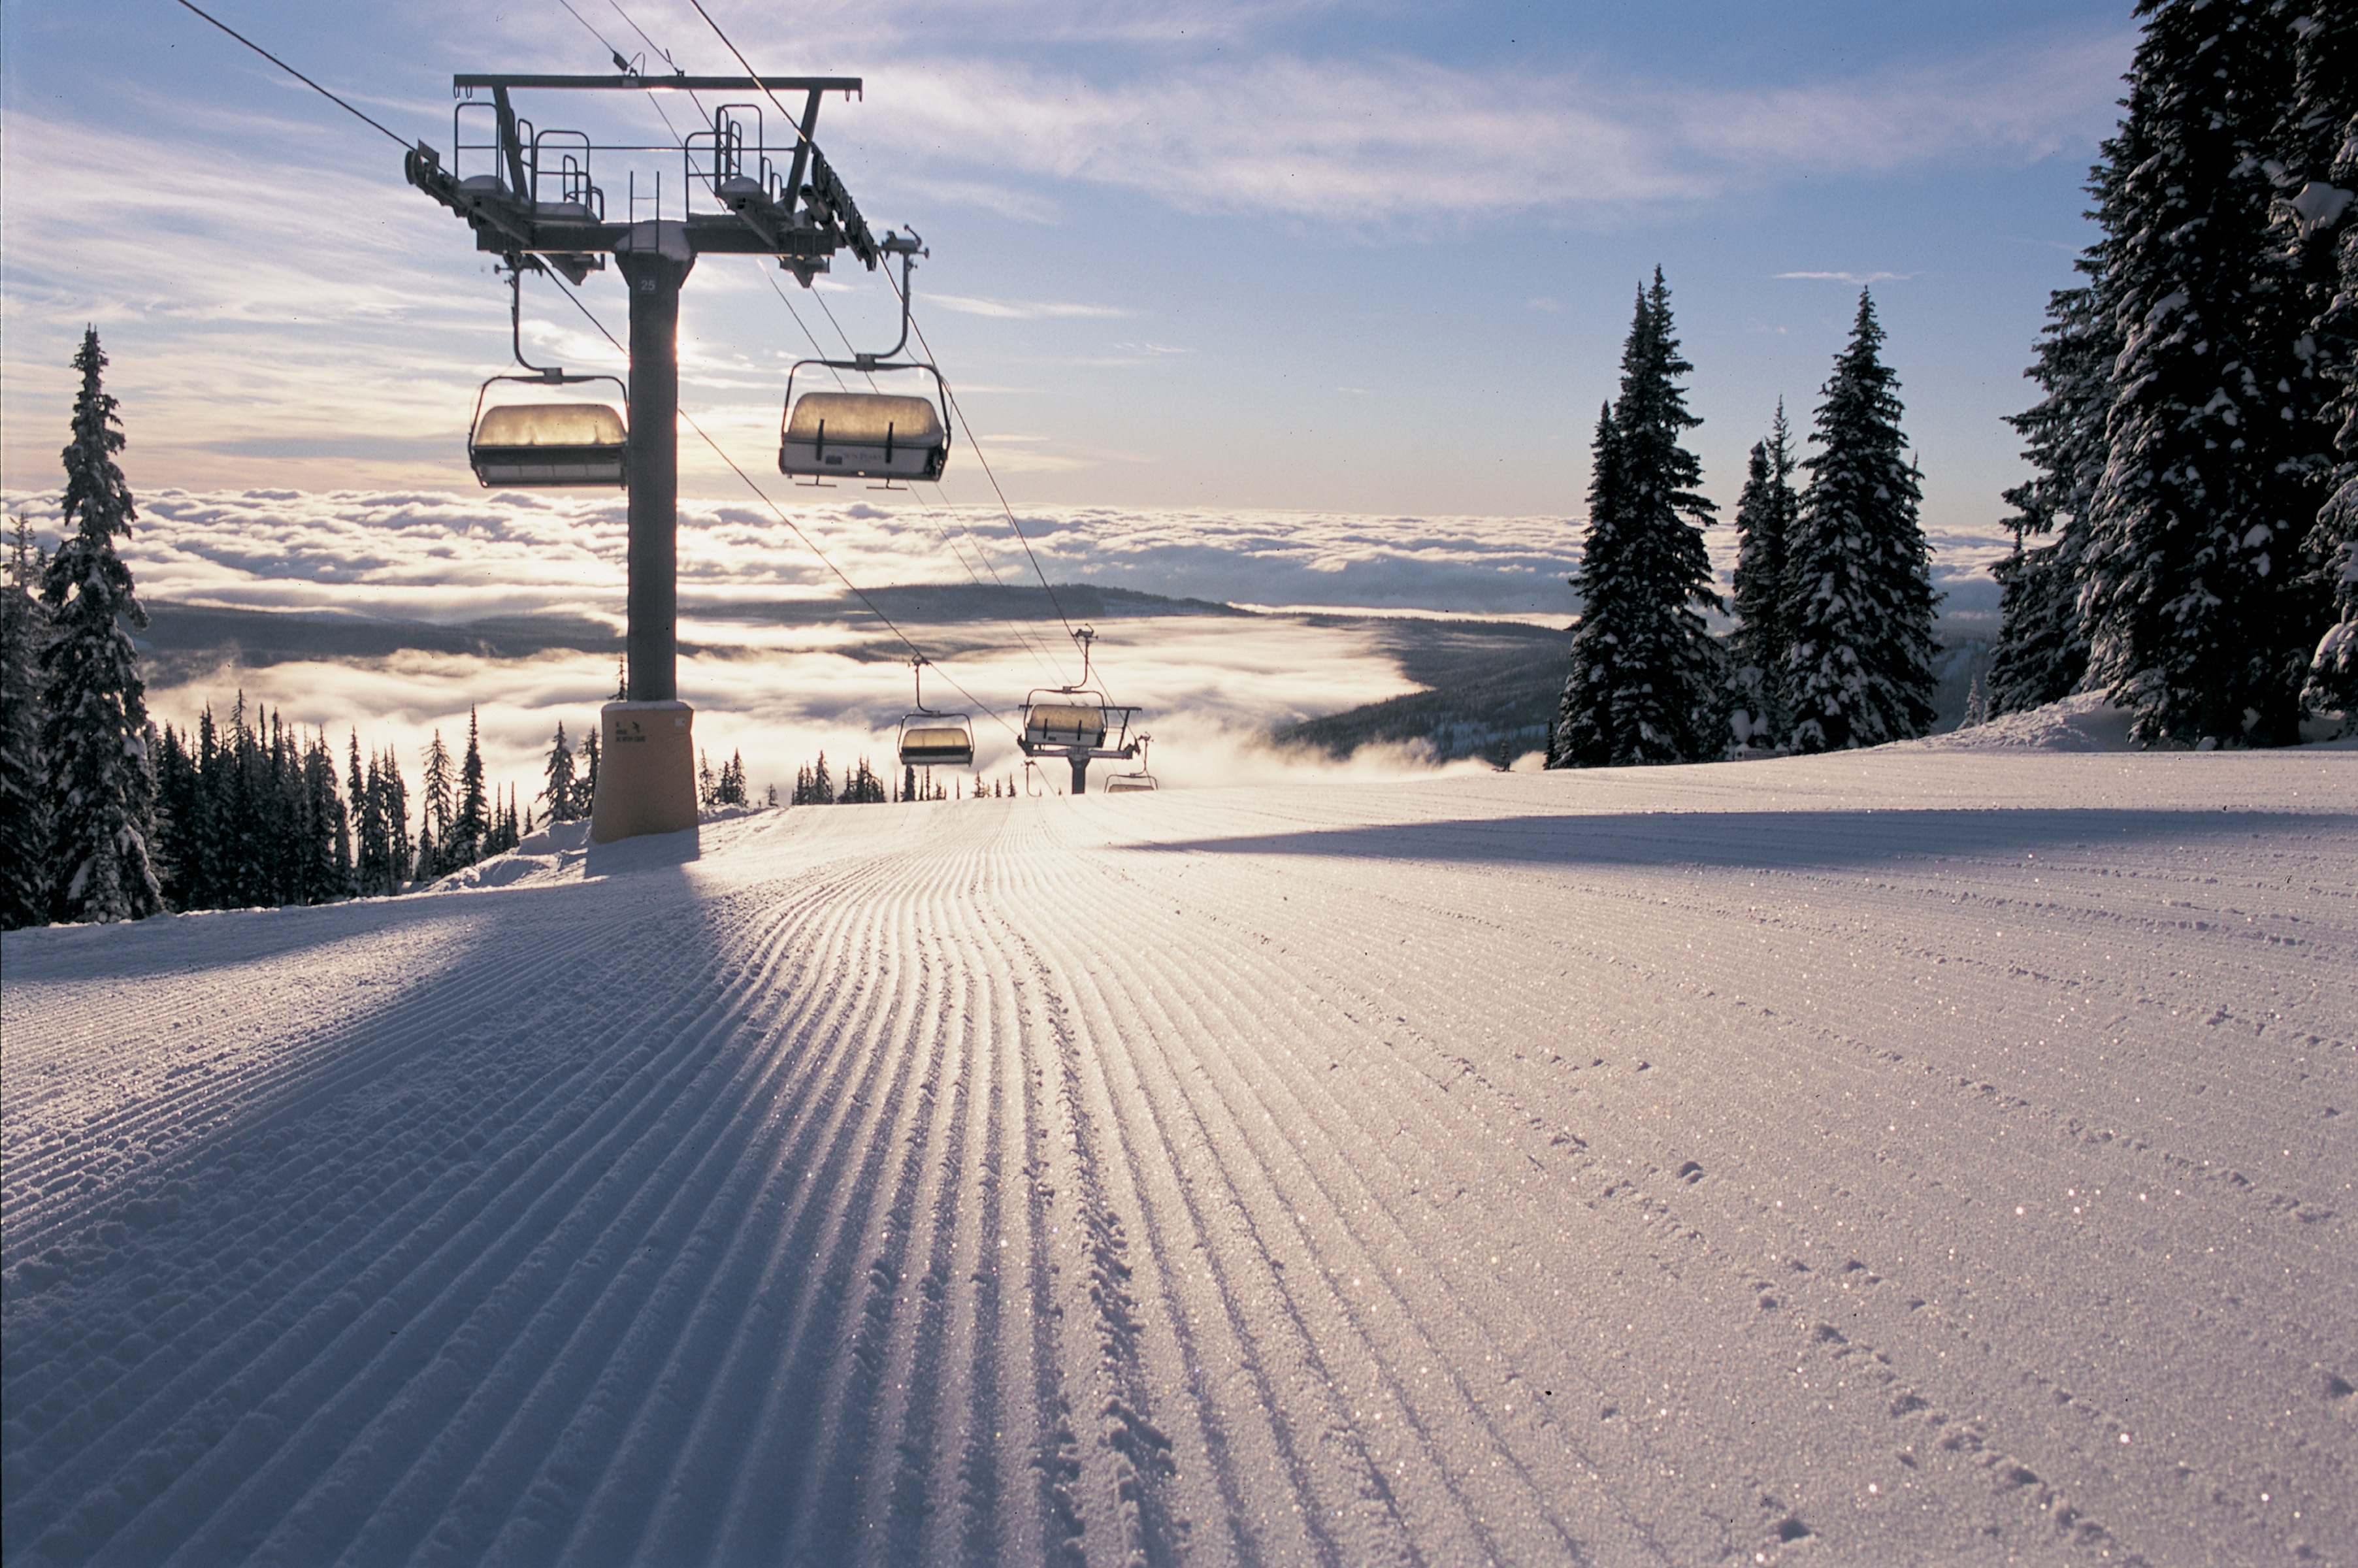 Sun Peaks Sunburst Chair (Adam Stein)undefined